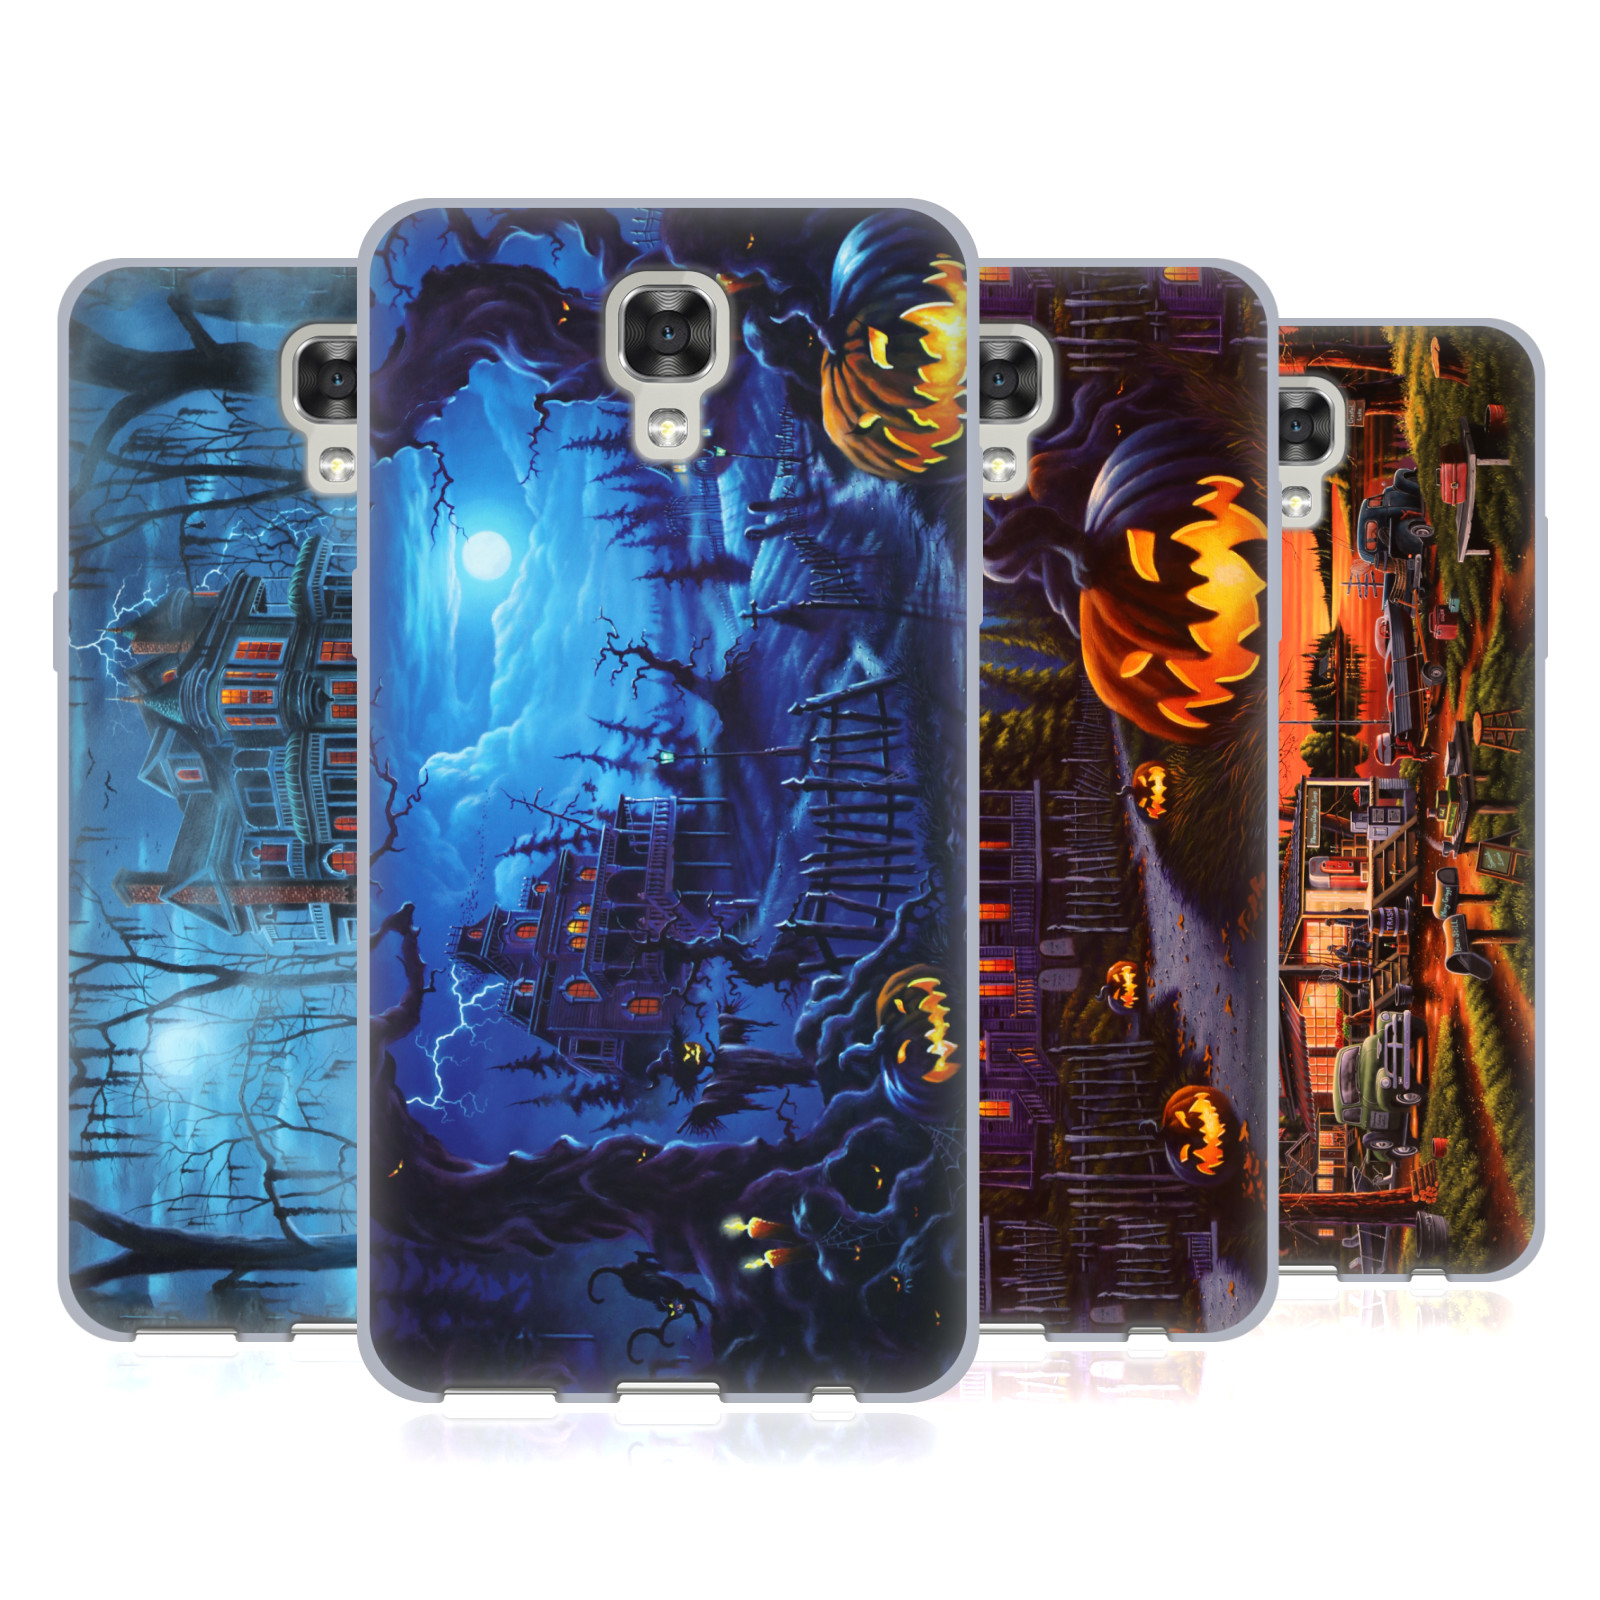 OFFICIEL-GENO-PEOPLES-ART-HALLOWEEN-ETUI-COQUE-EN-GEL-MOLLE-POUR-LG-TELEPHONES-2